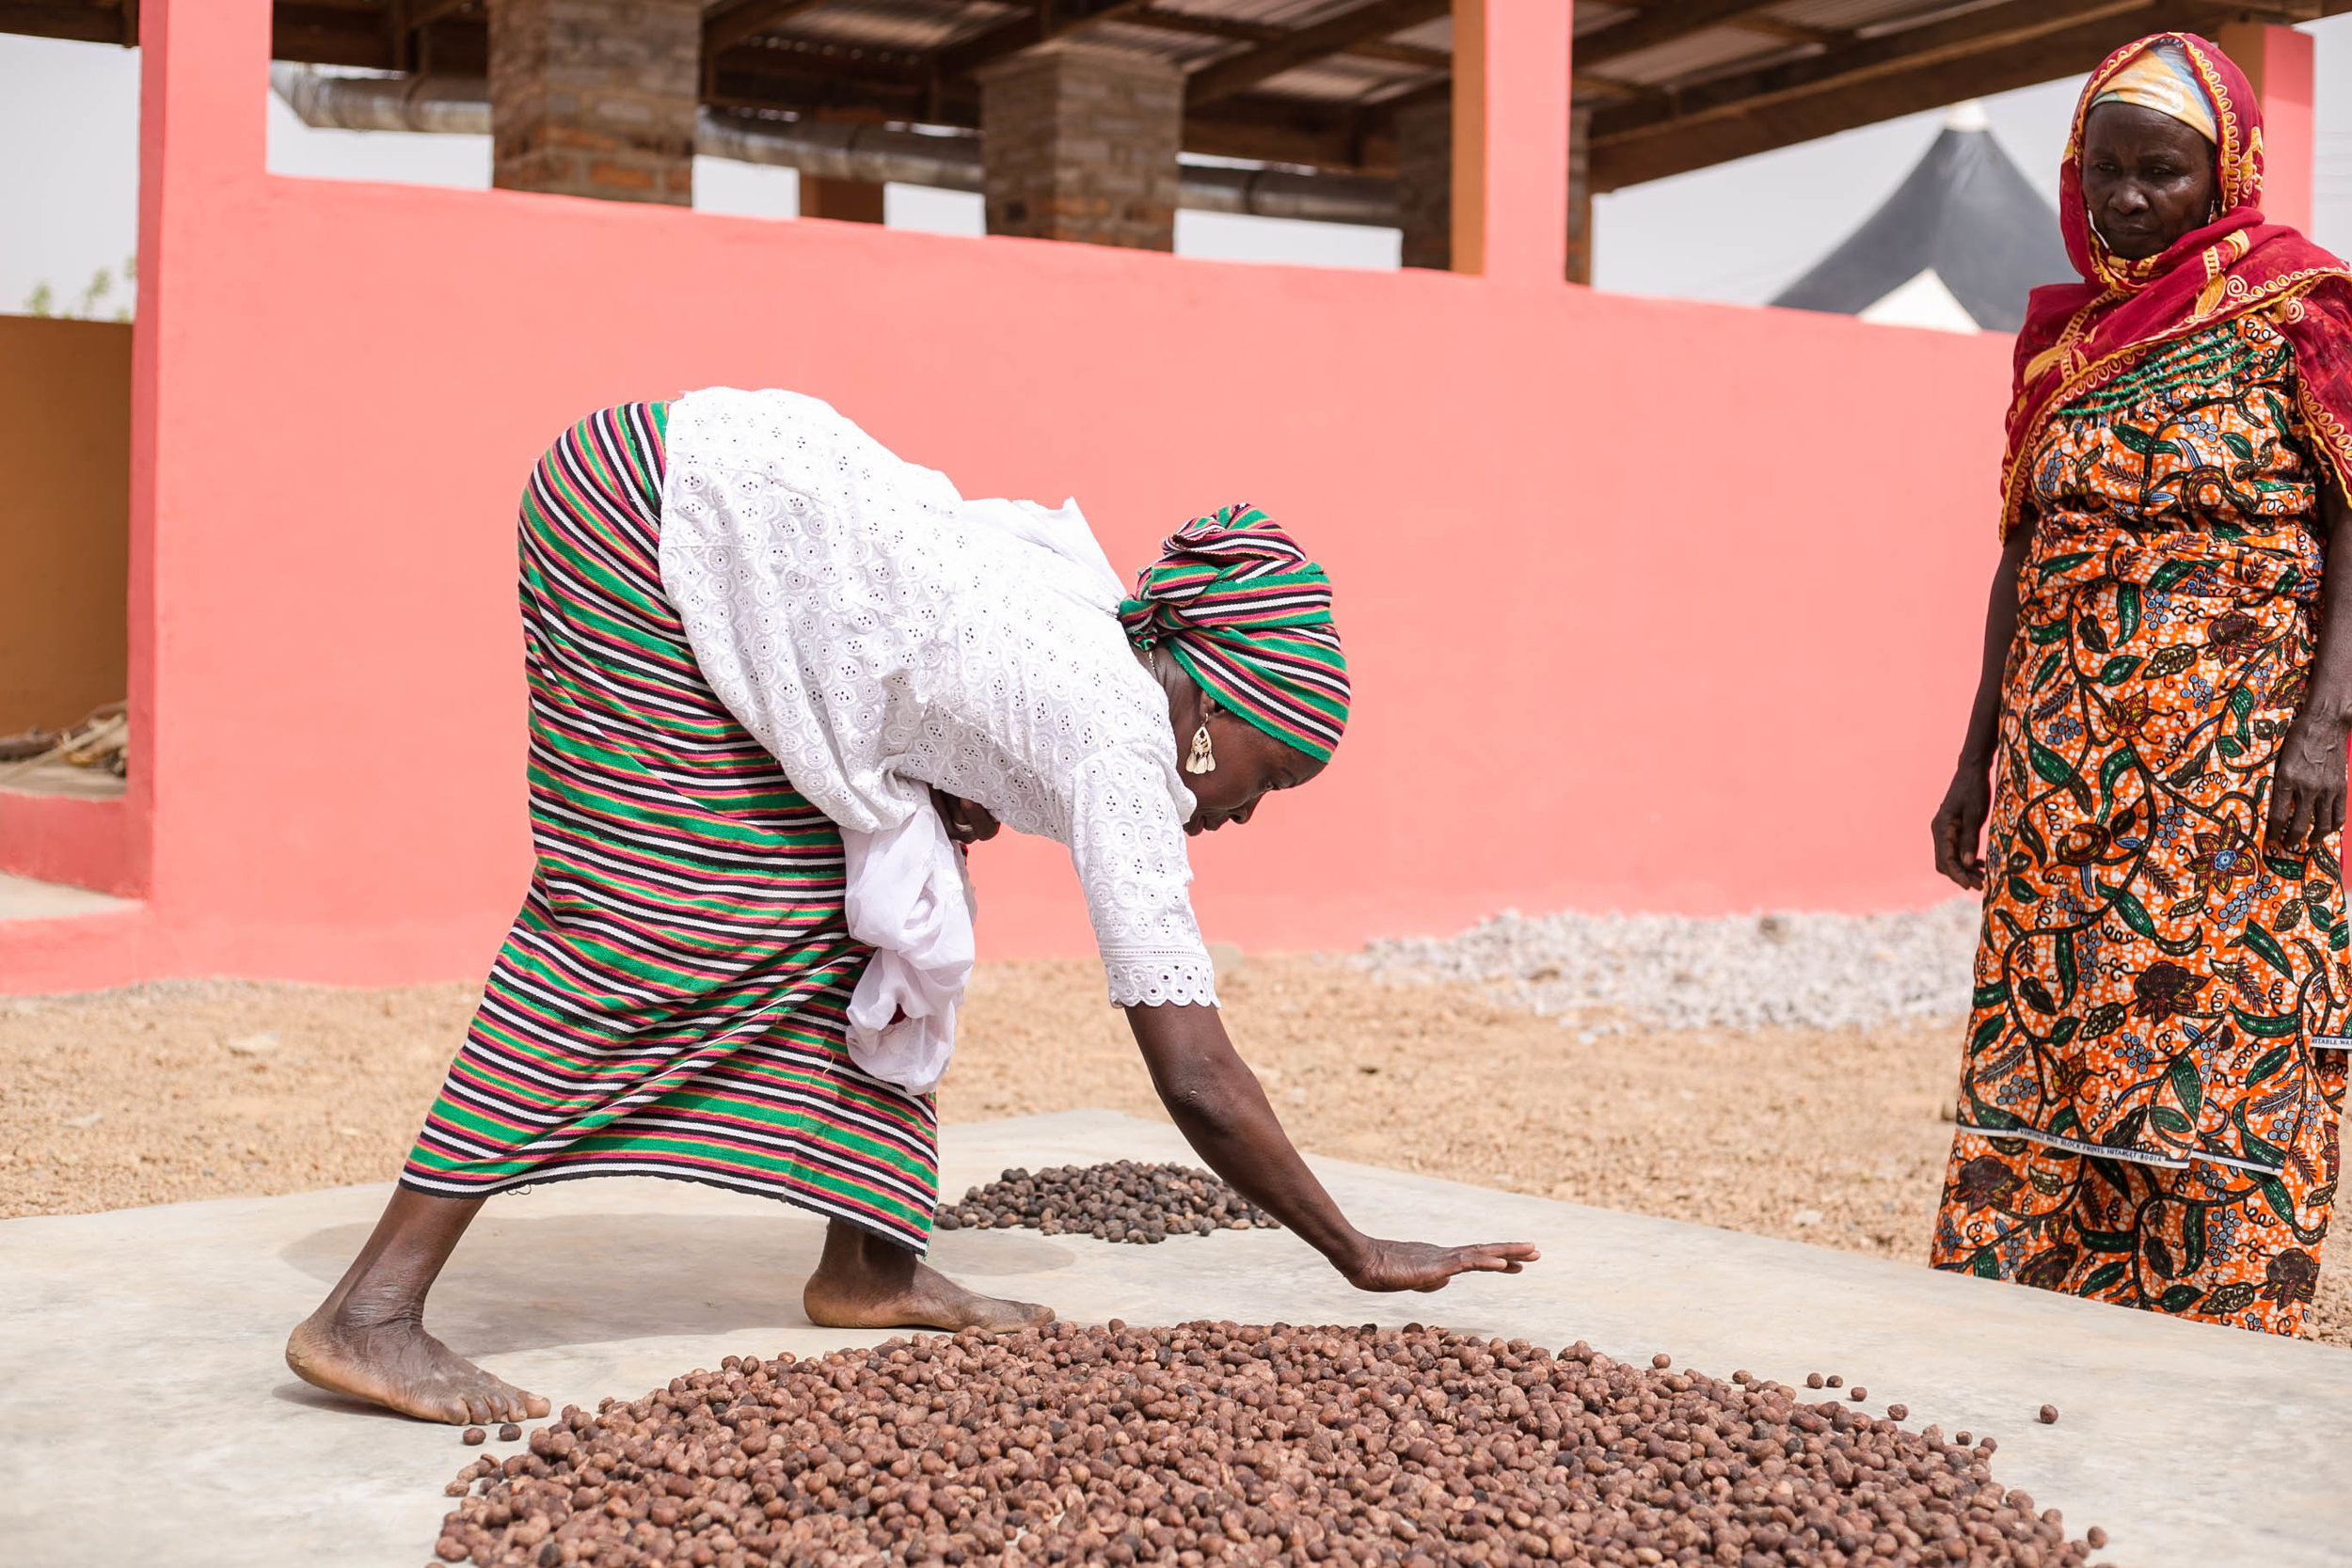 Sorting shea nuts and the Posh pink Shea Sisterhood warehouse and processing center in Gizaa Gundaa, Ghana